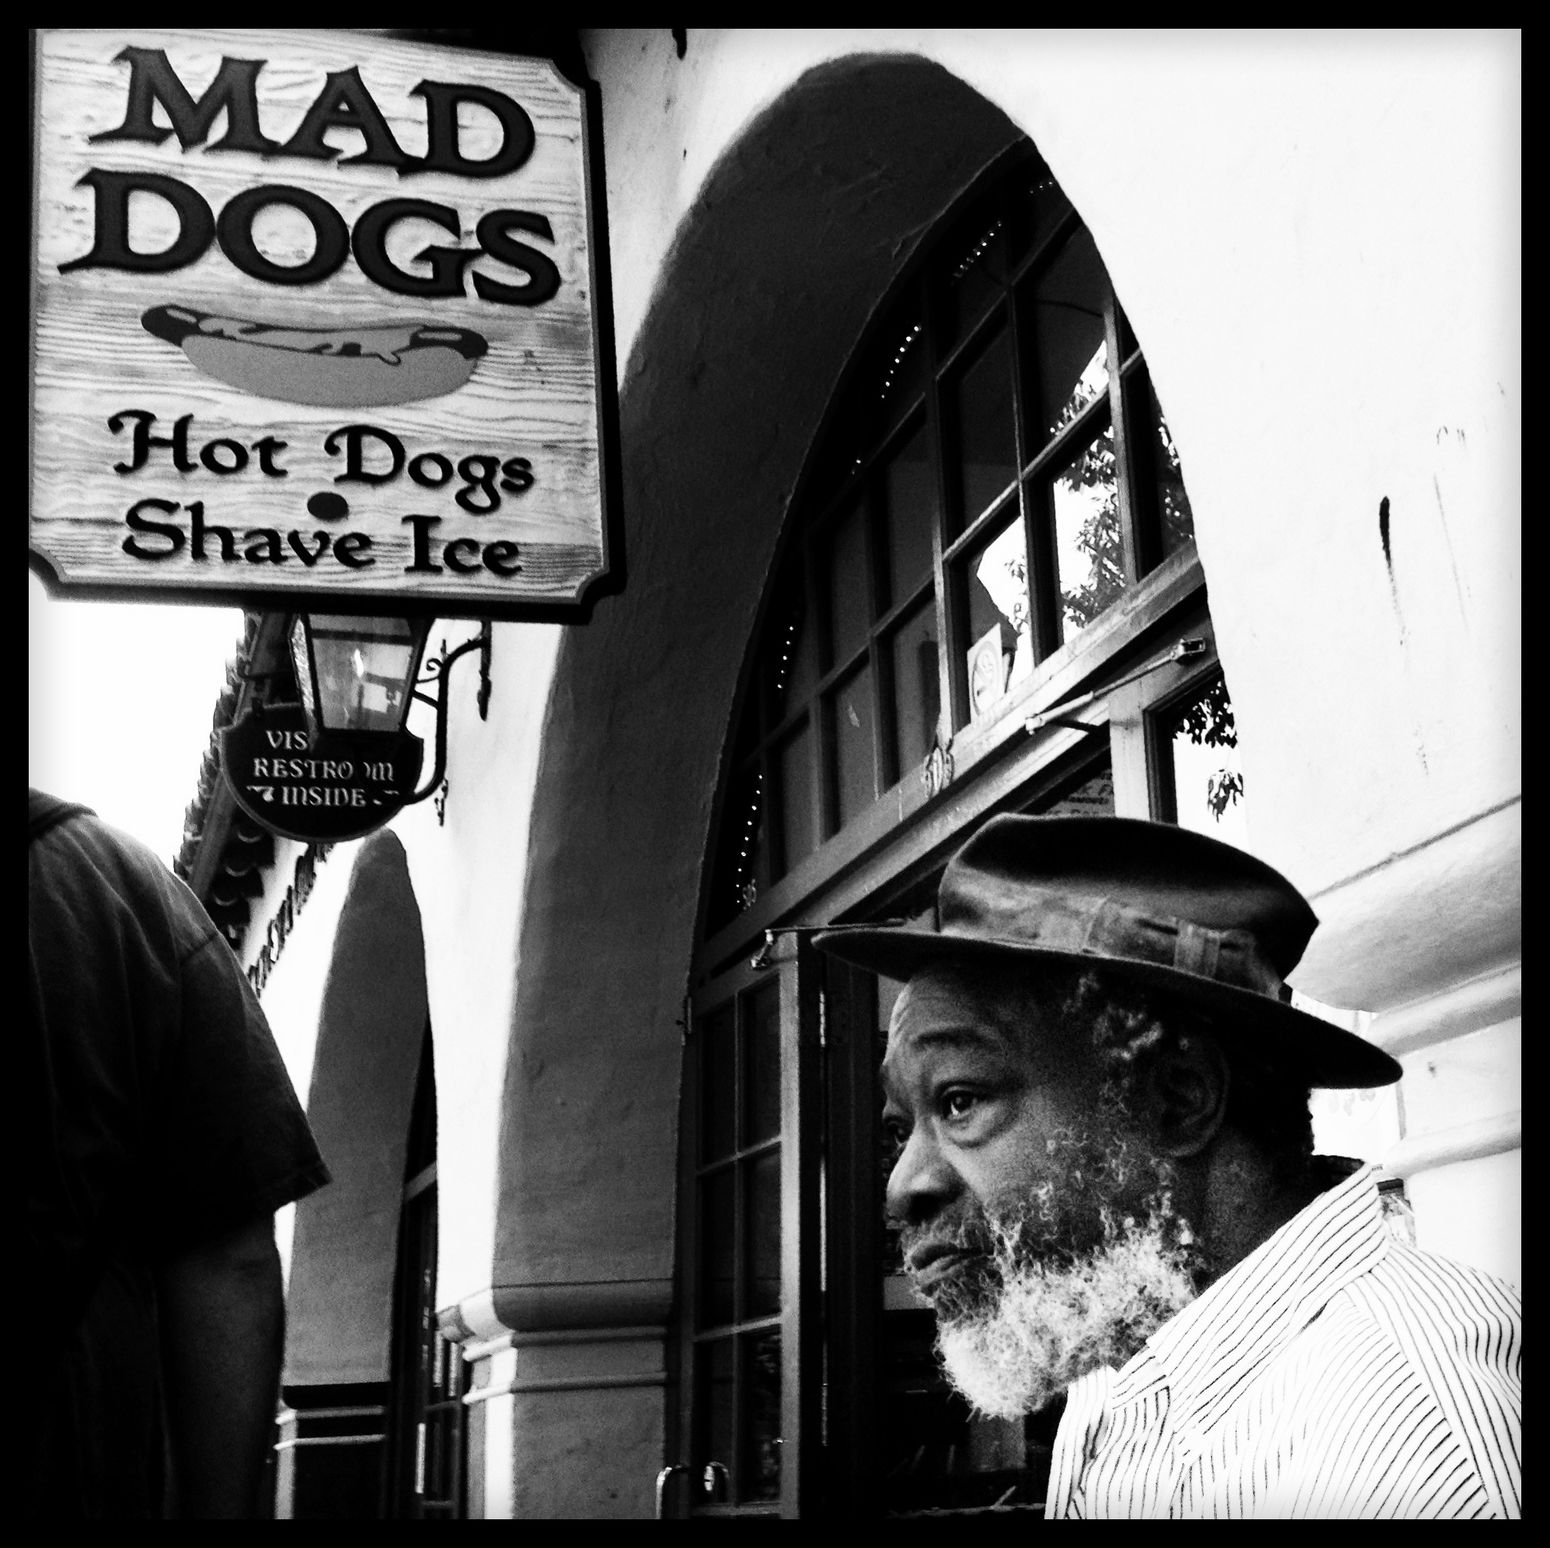 Mad Dogs Mad Dogs